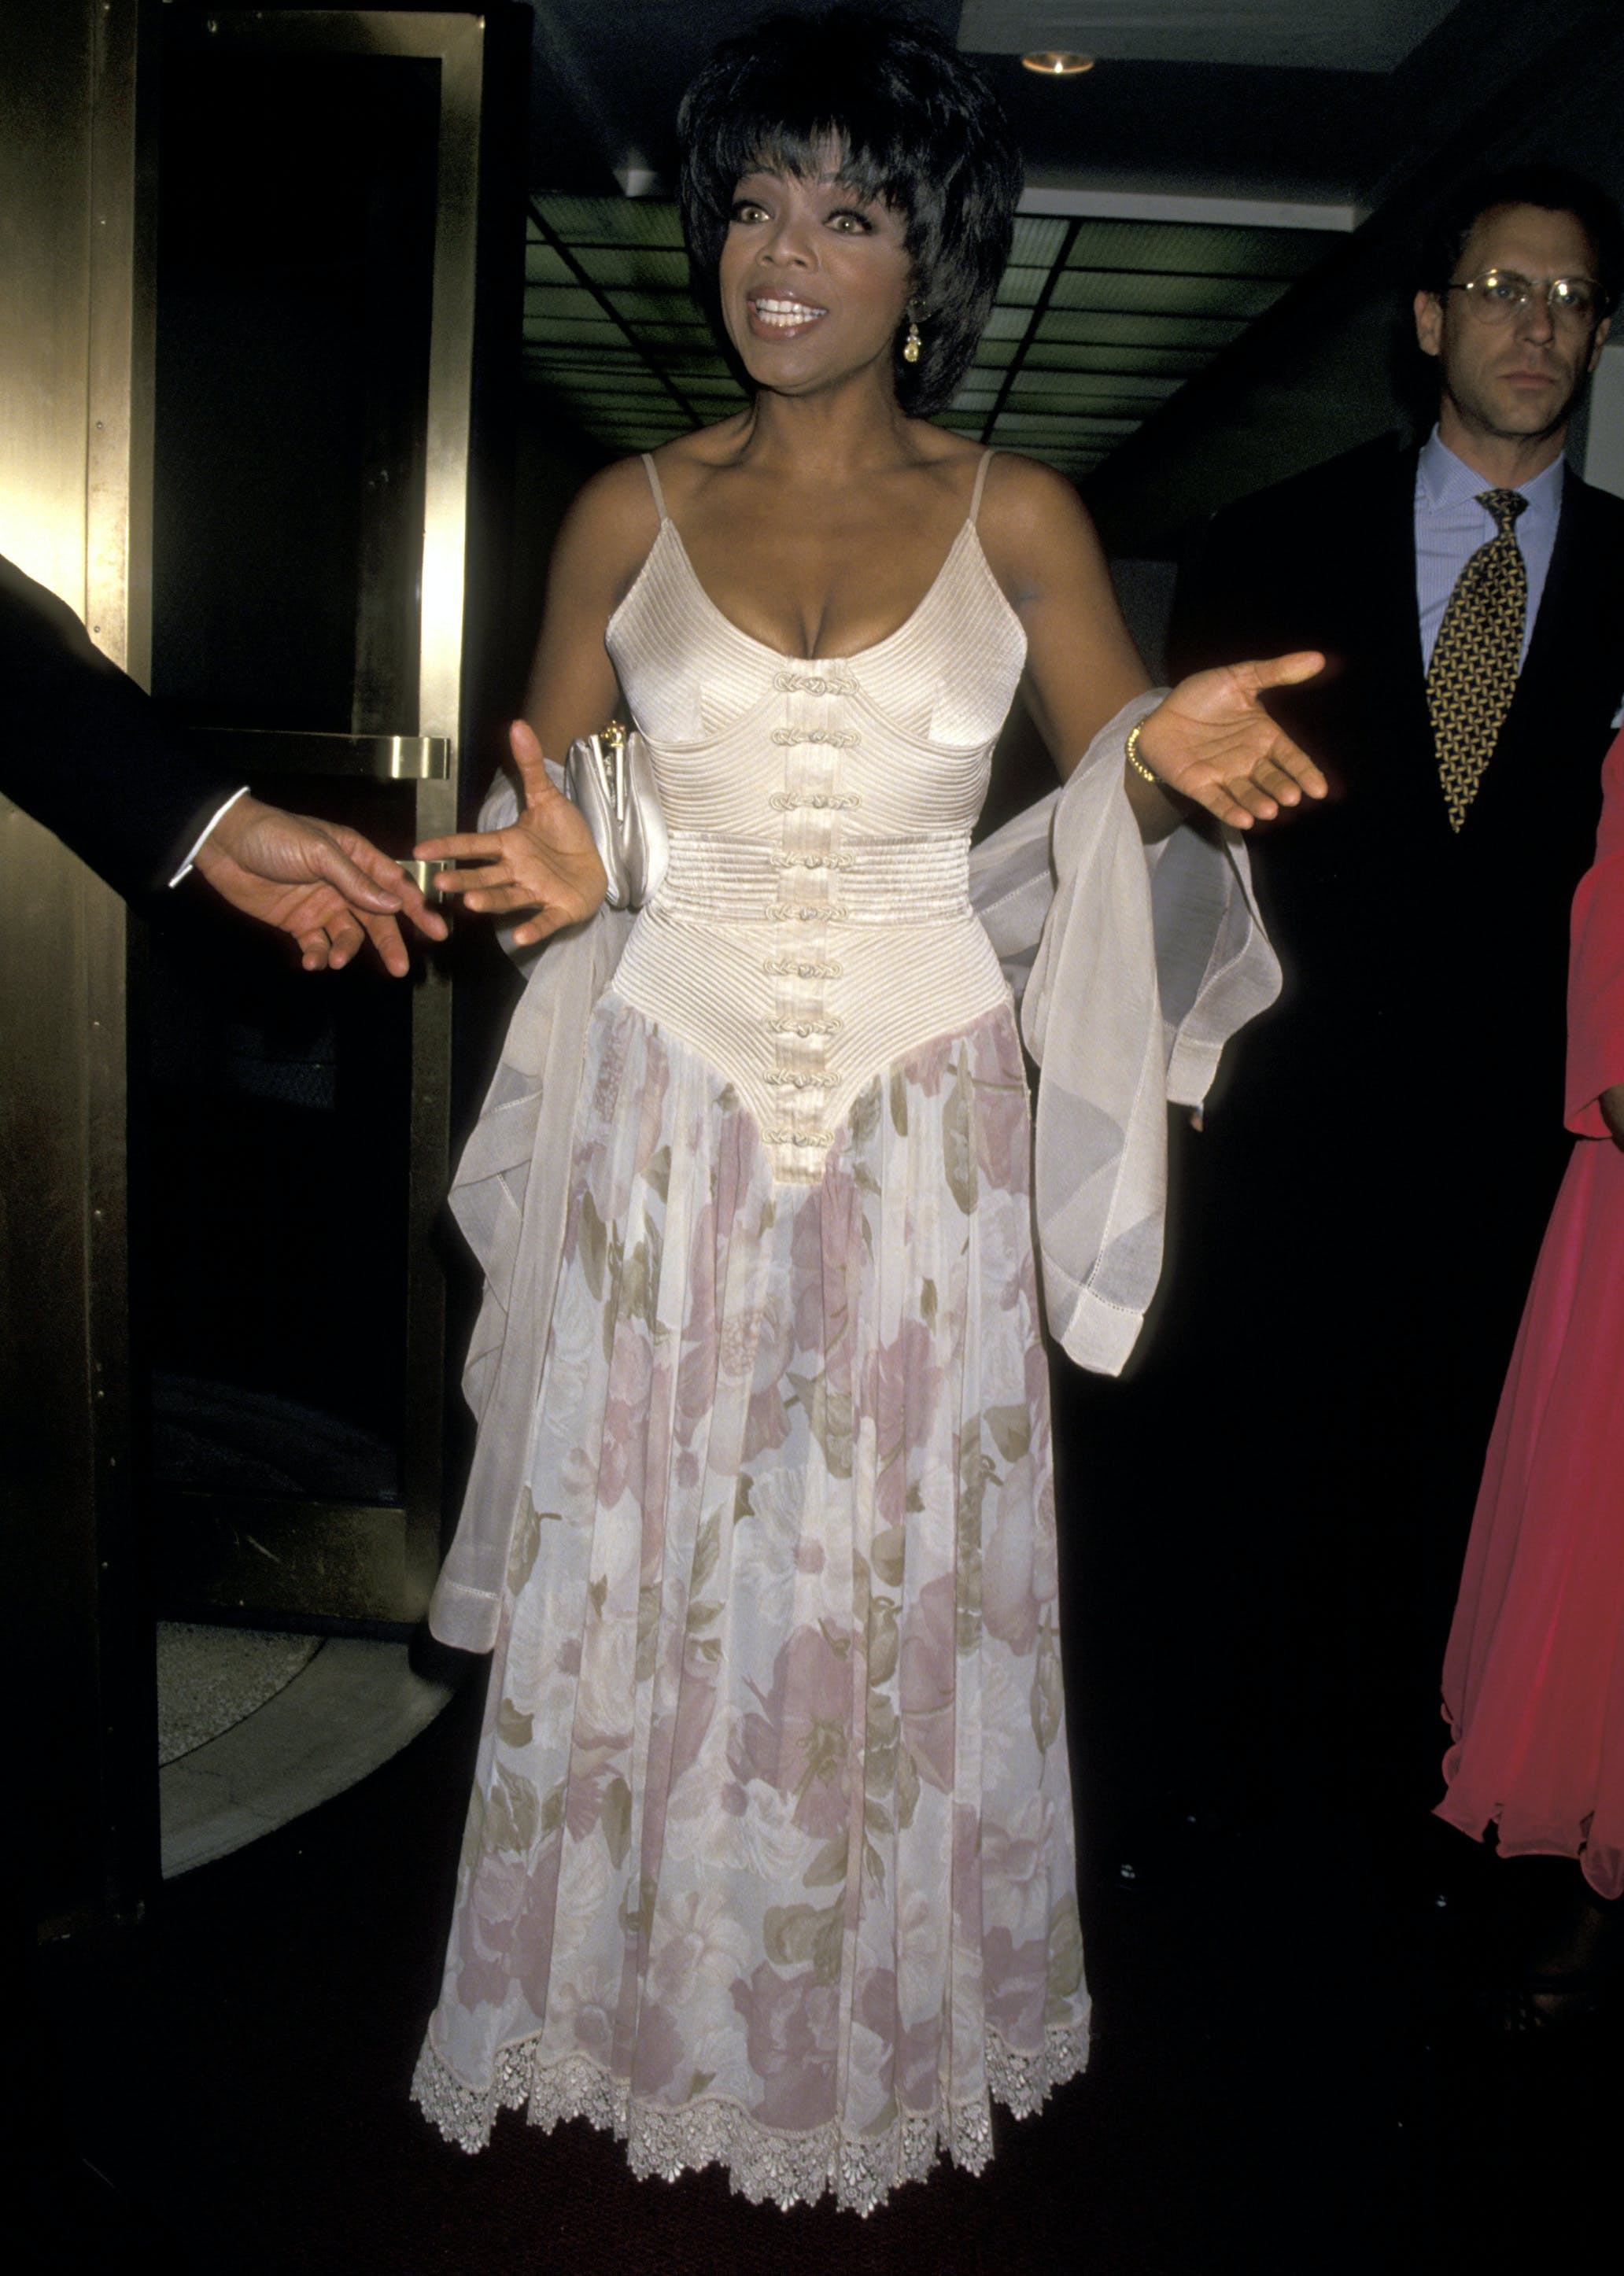 oprah iwnfrey at the 1994 emmys